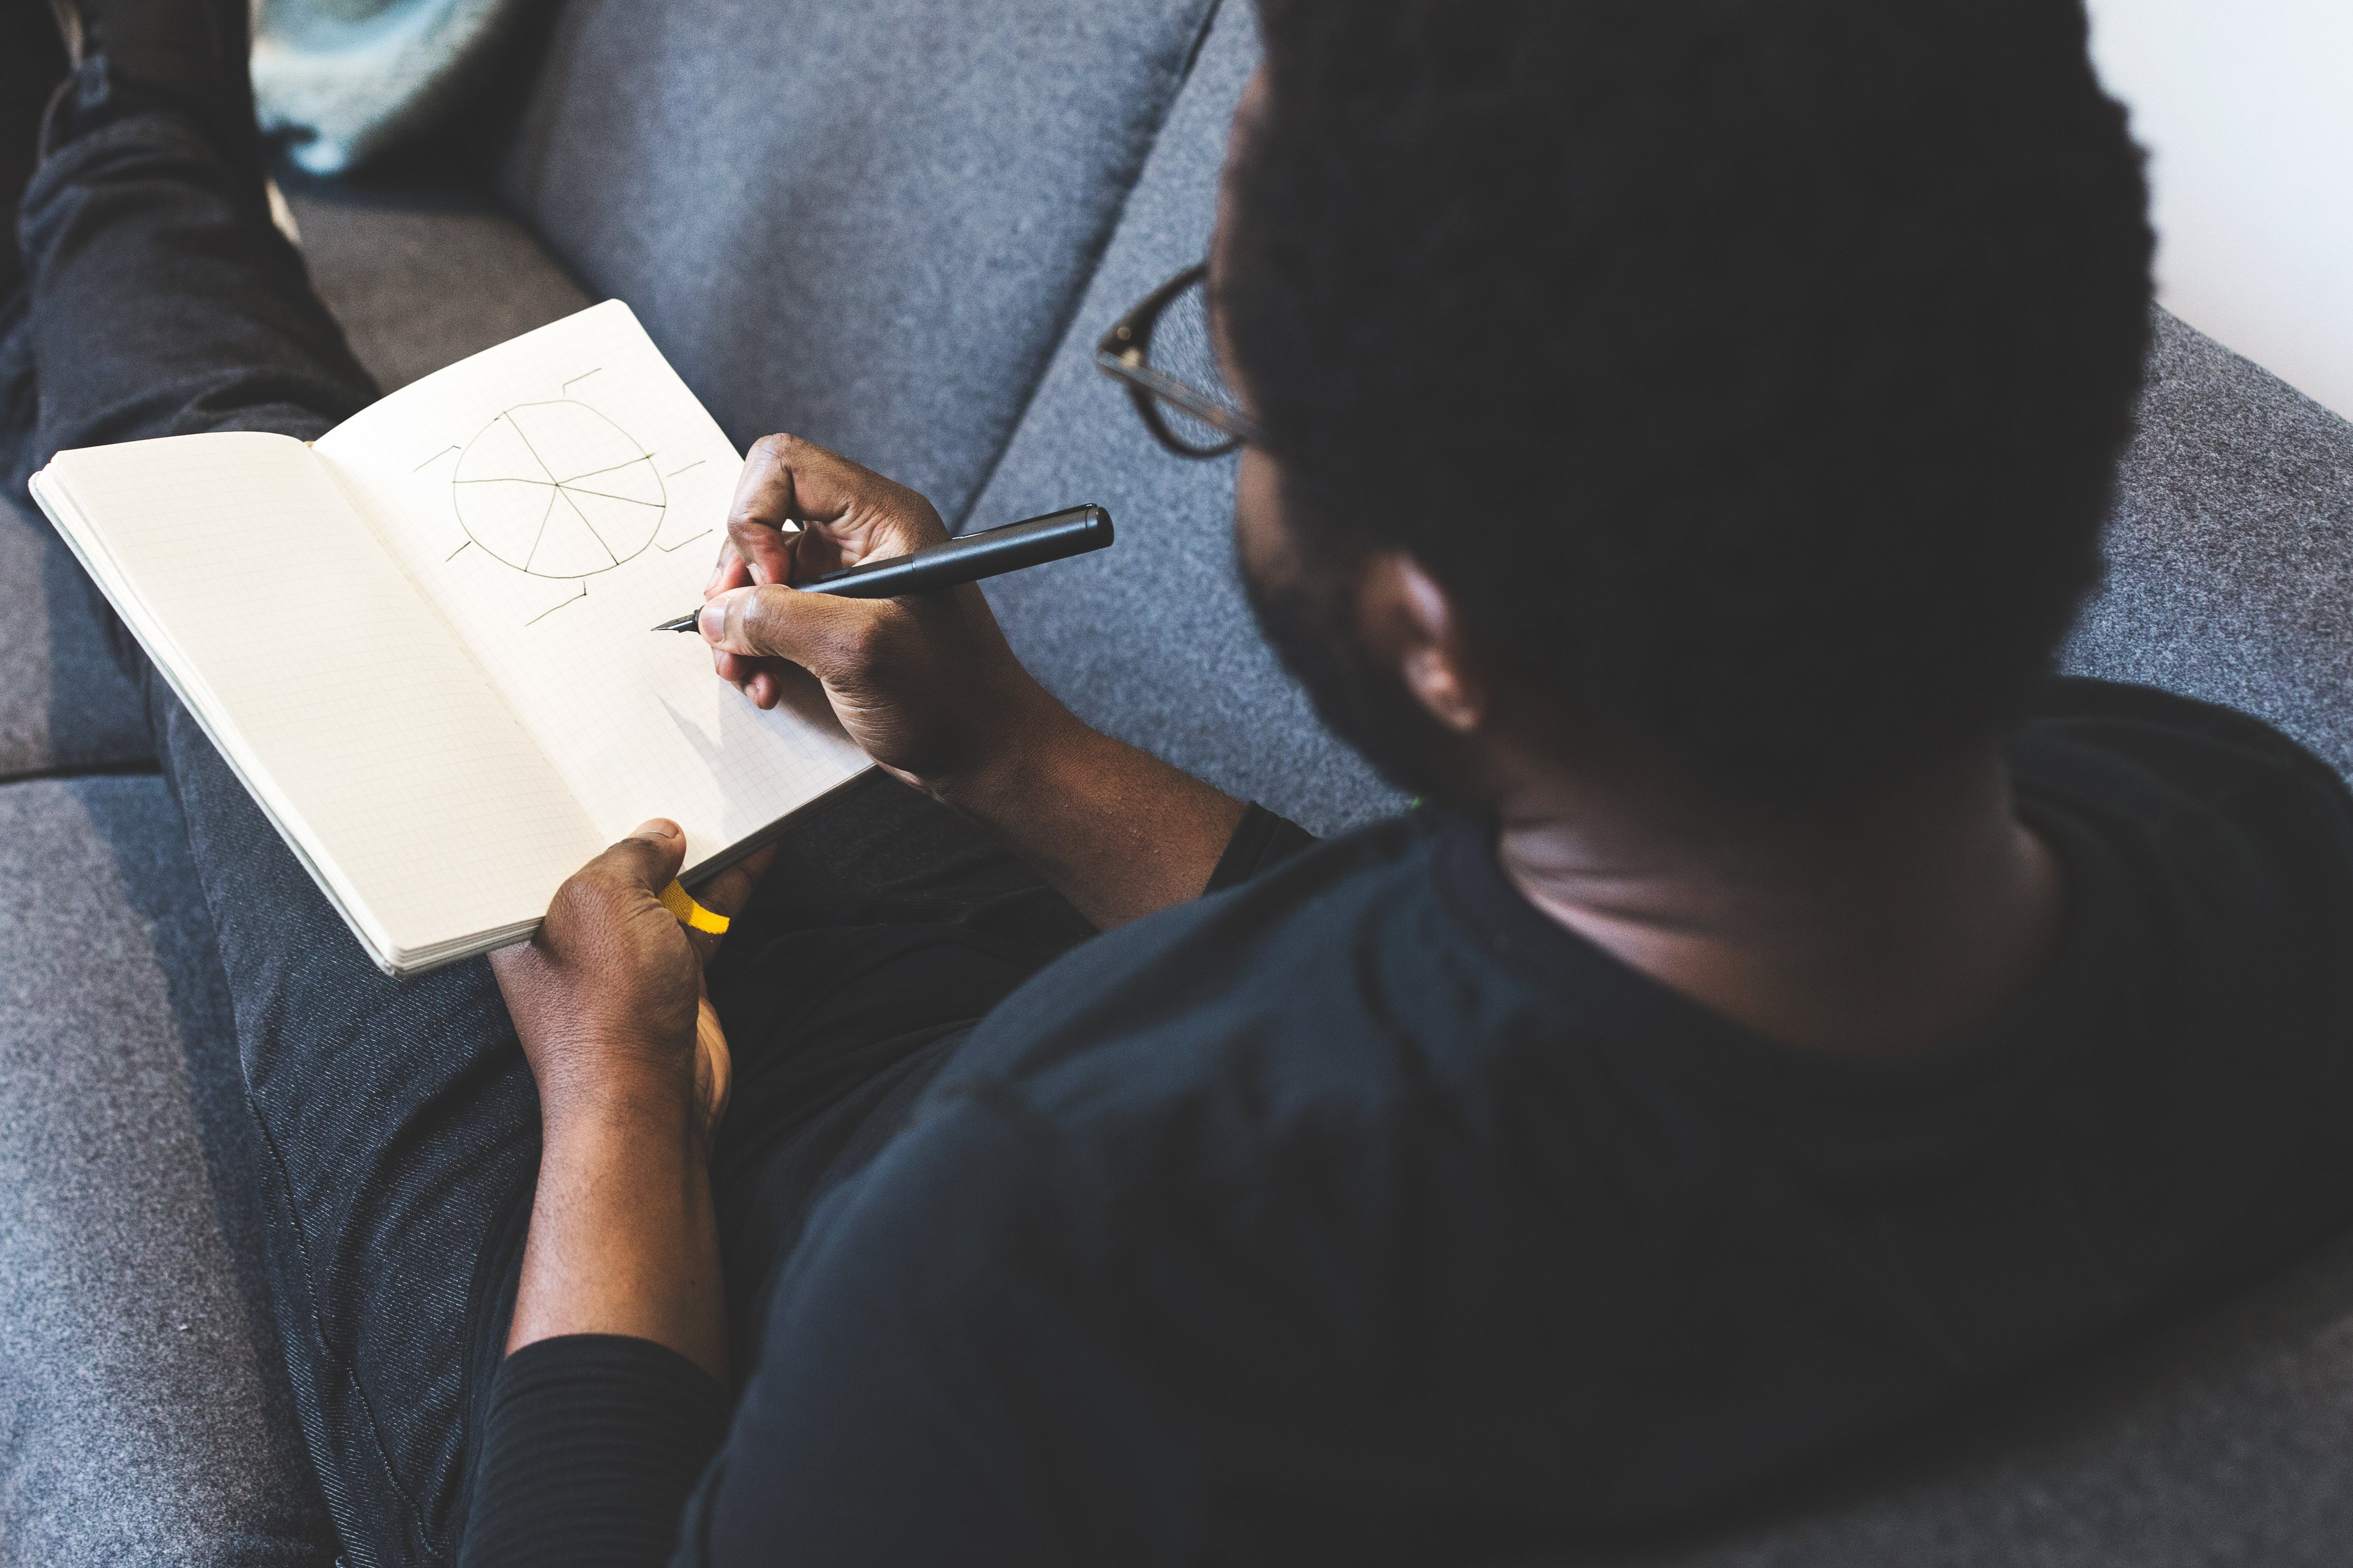 8 Habits that creative people have that make them stand out